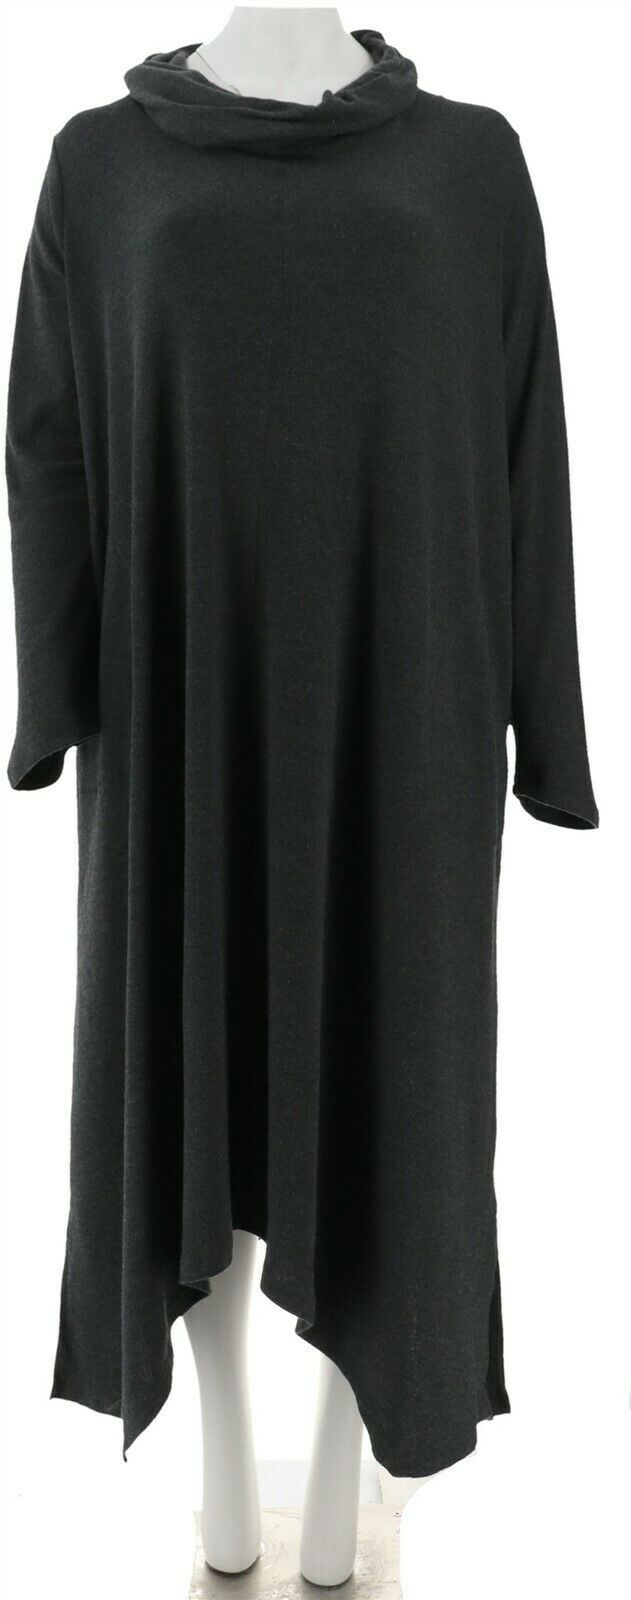 Carole Hochman Extra Brushed Interlock Cowl Neck Lounger Charcoal L NEW A310266